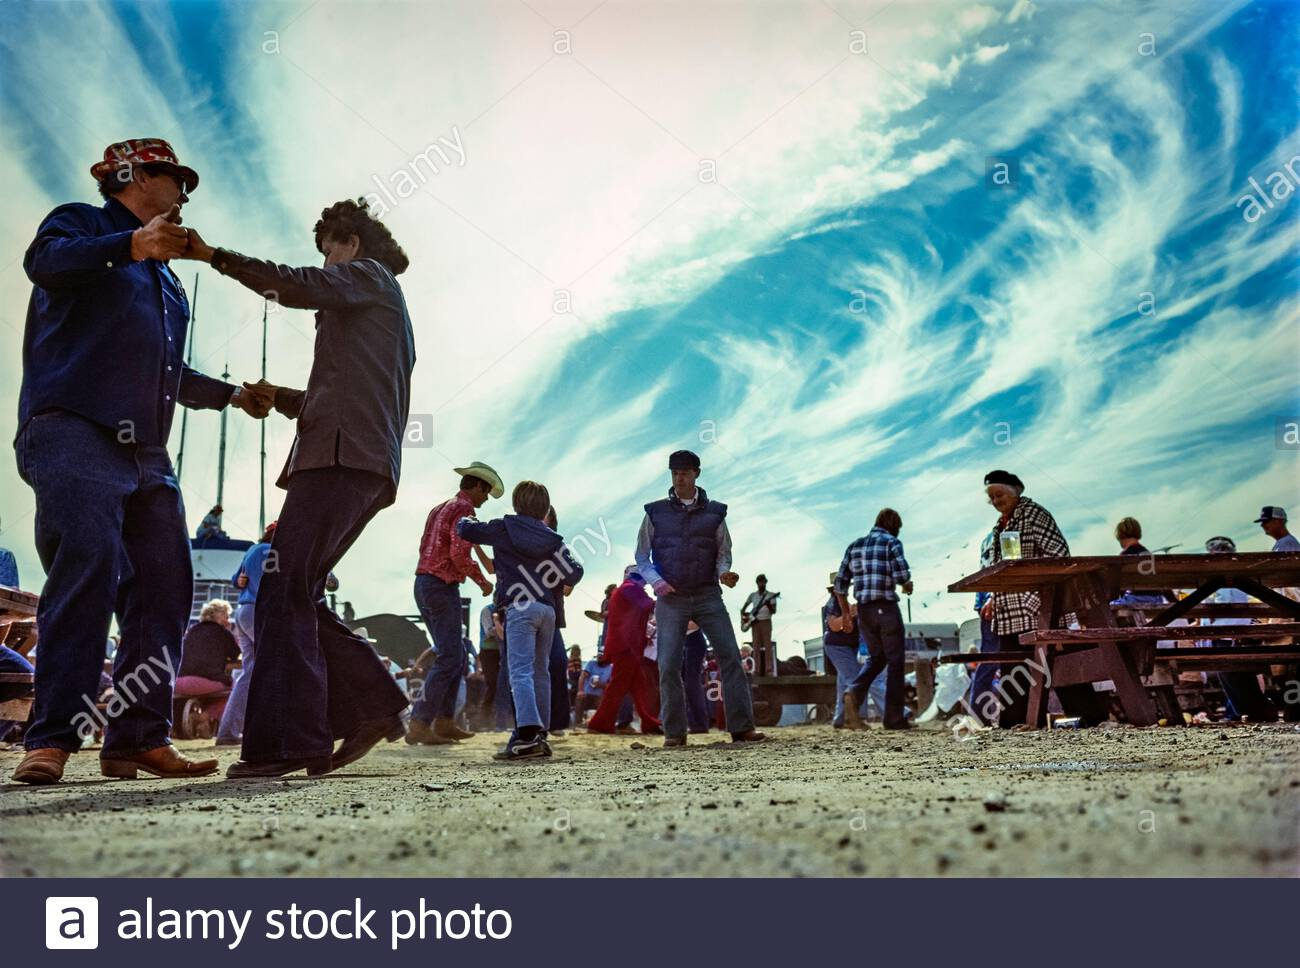 Fisherman's Picnic, Lawson's Landing, Dillon Beach, California, July 1979 Stock Photo